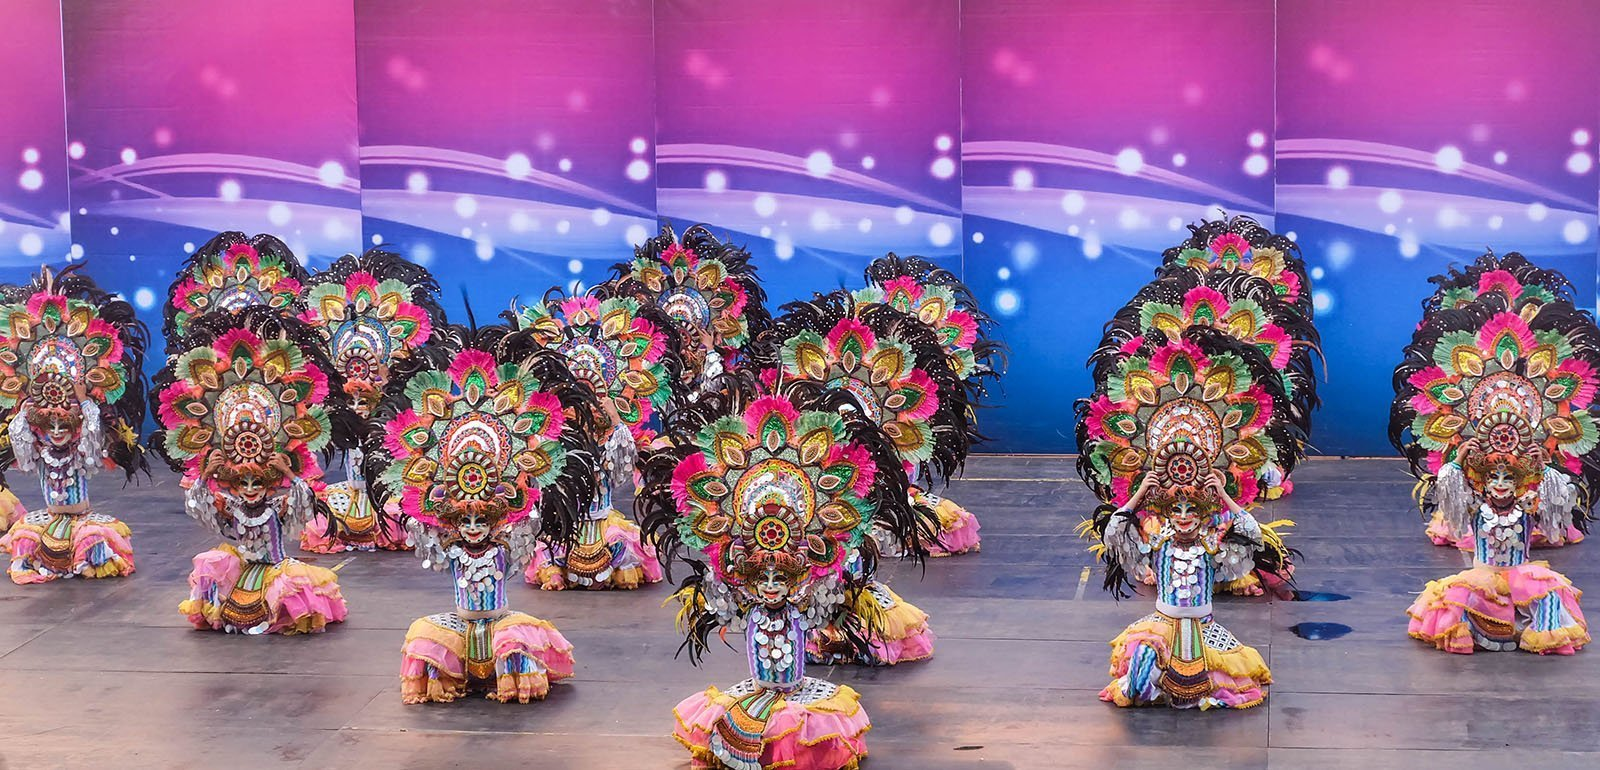 Panaad Festival: Showcasing The Best of Negros Occidental